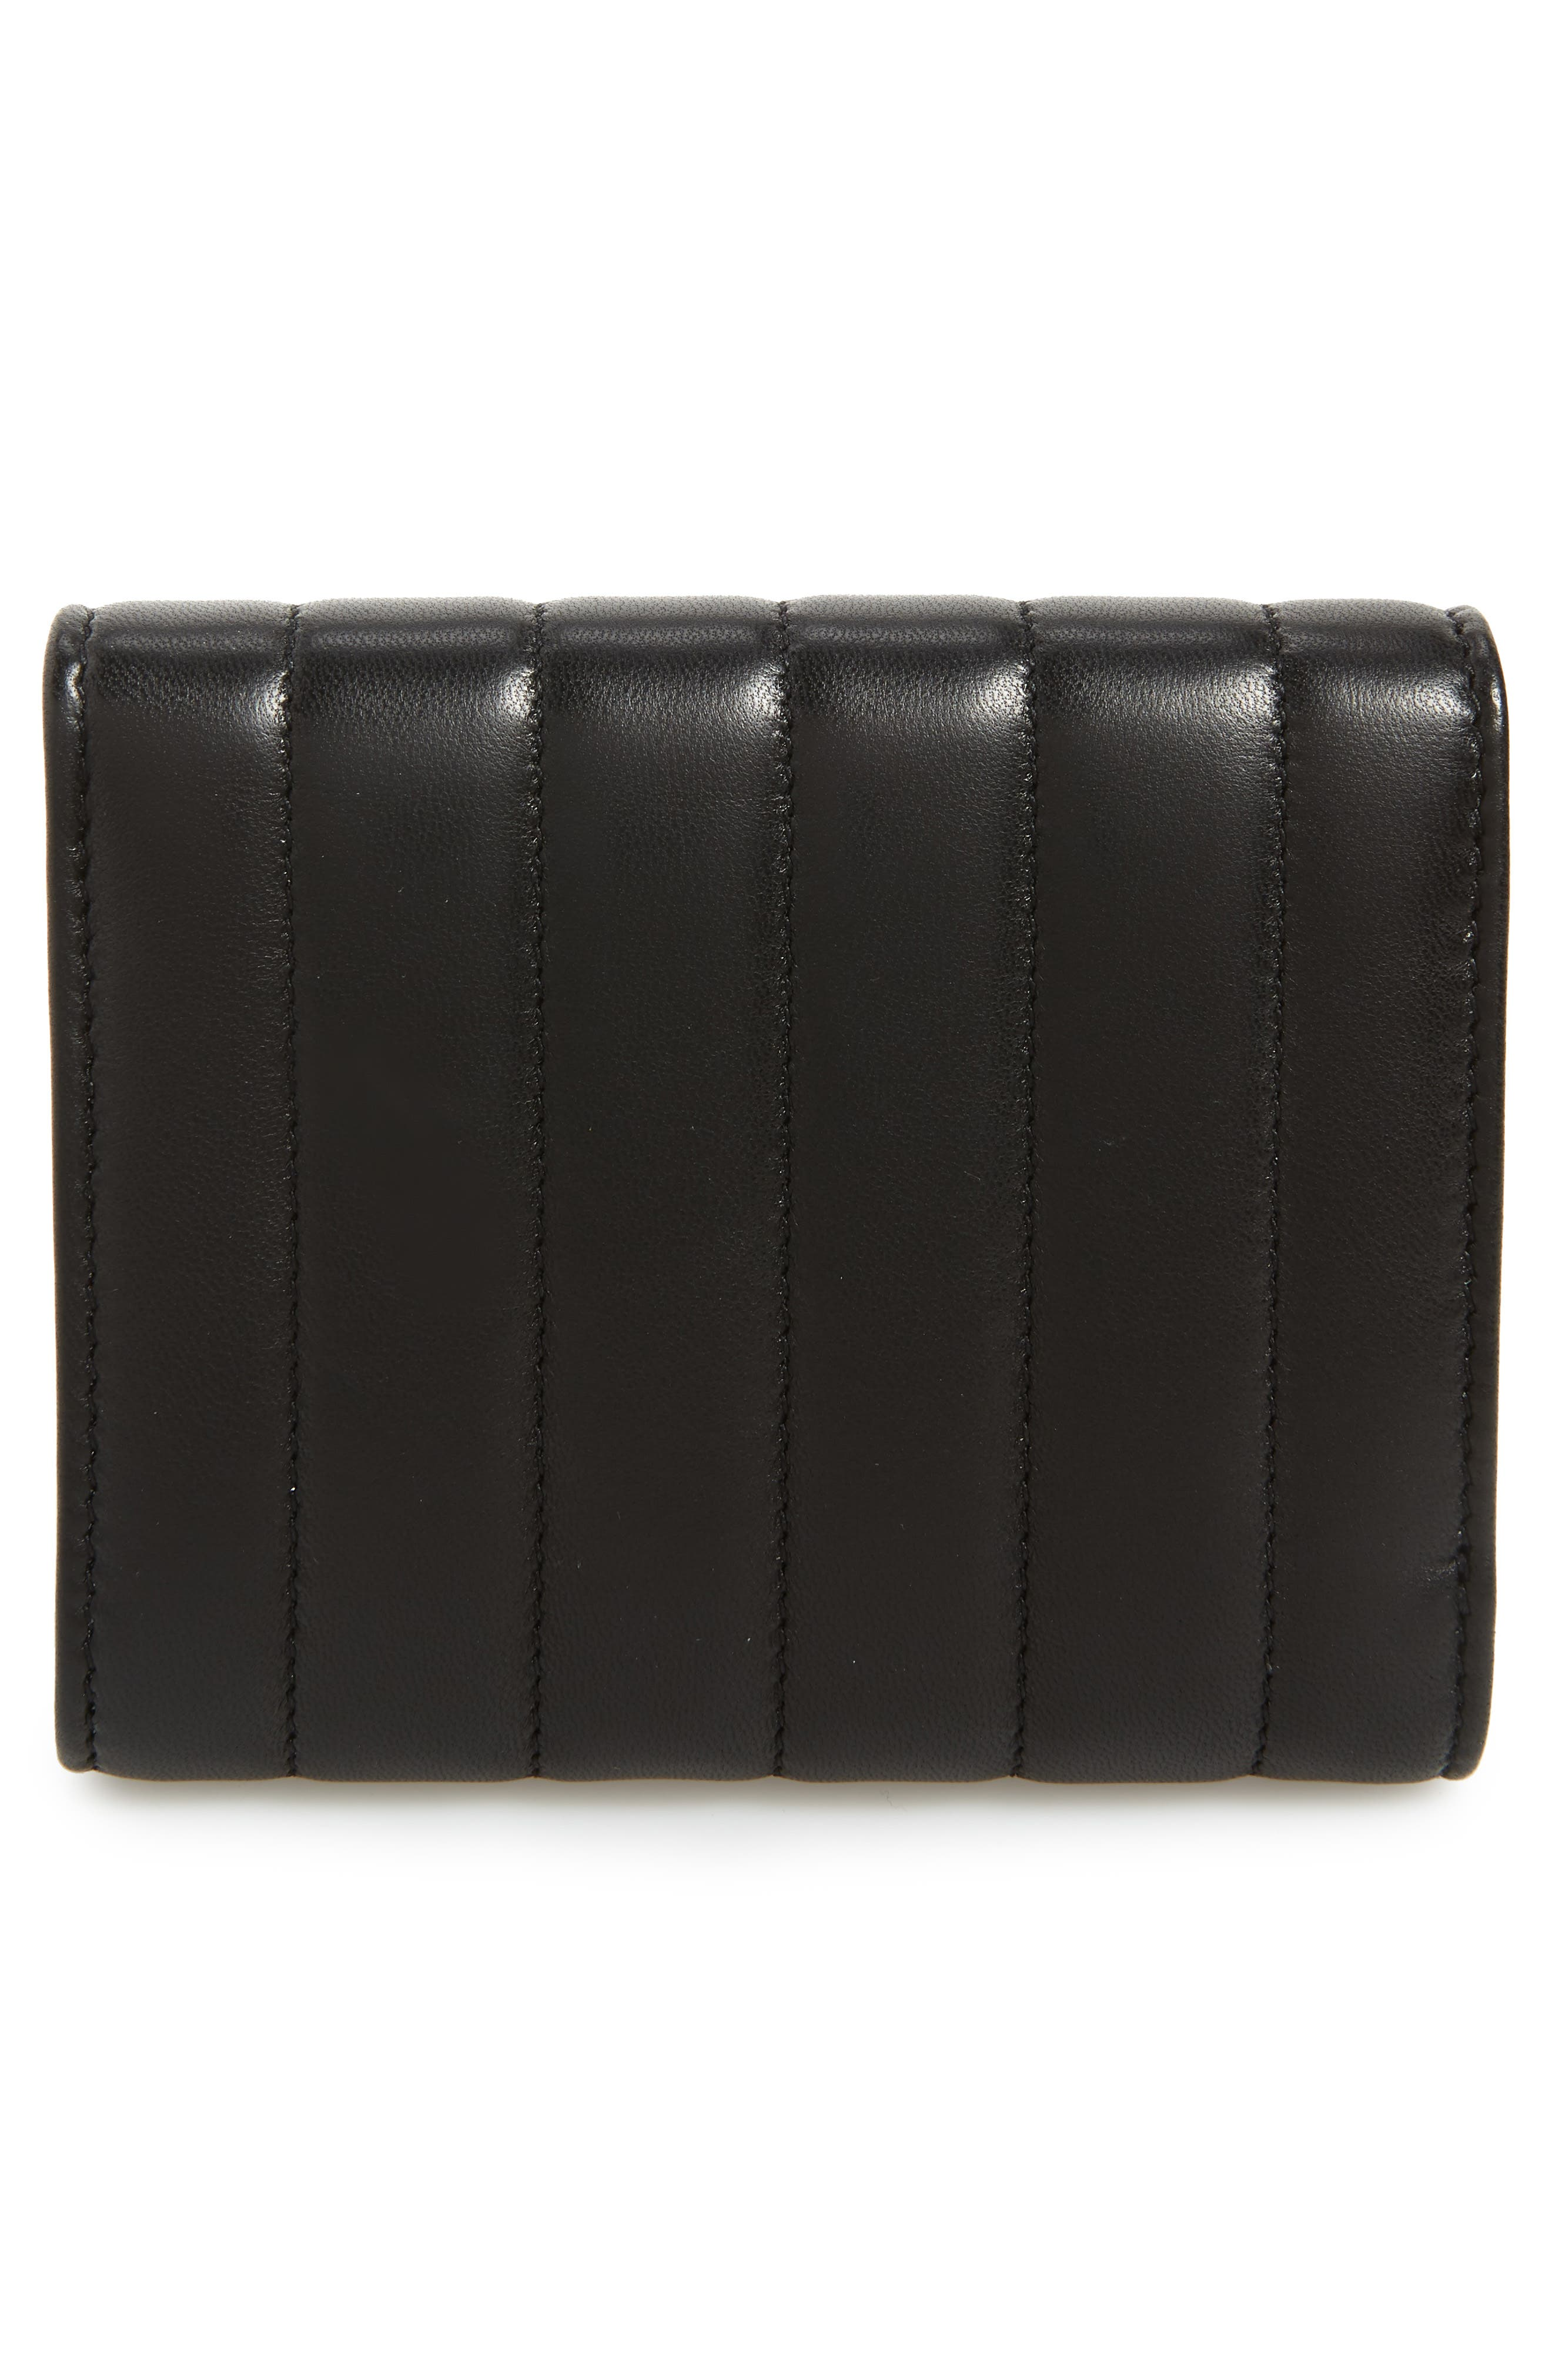 Vicky Lambskin Leather Trifold Wallet,                             Alternate thumbnail 4, color,                             NOIR